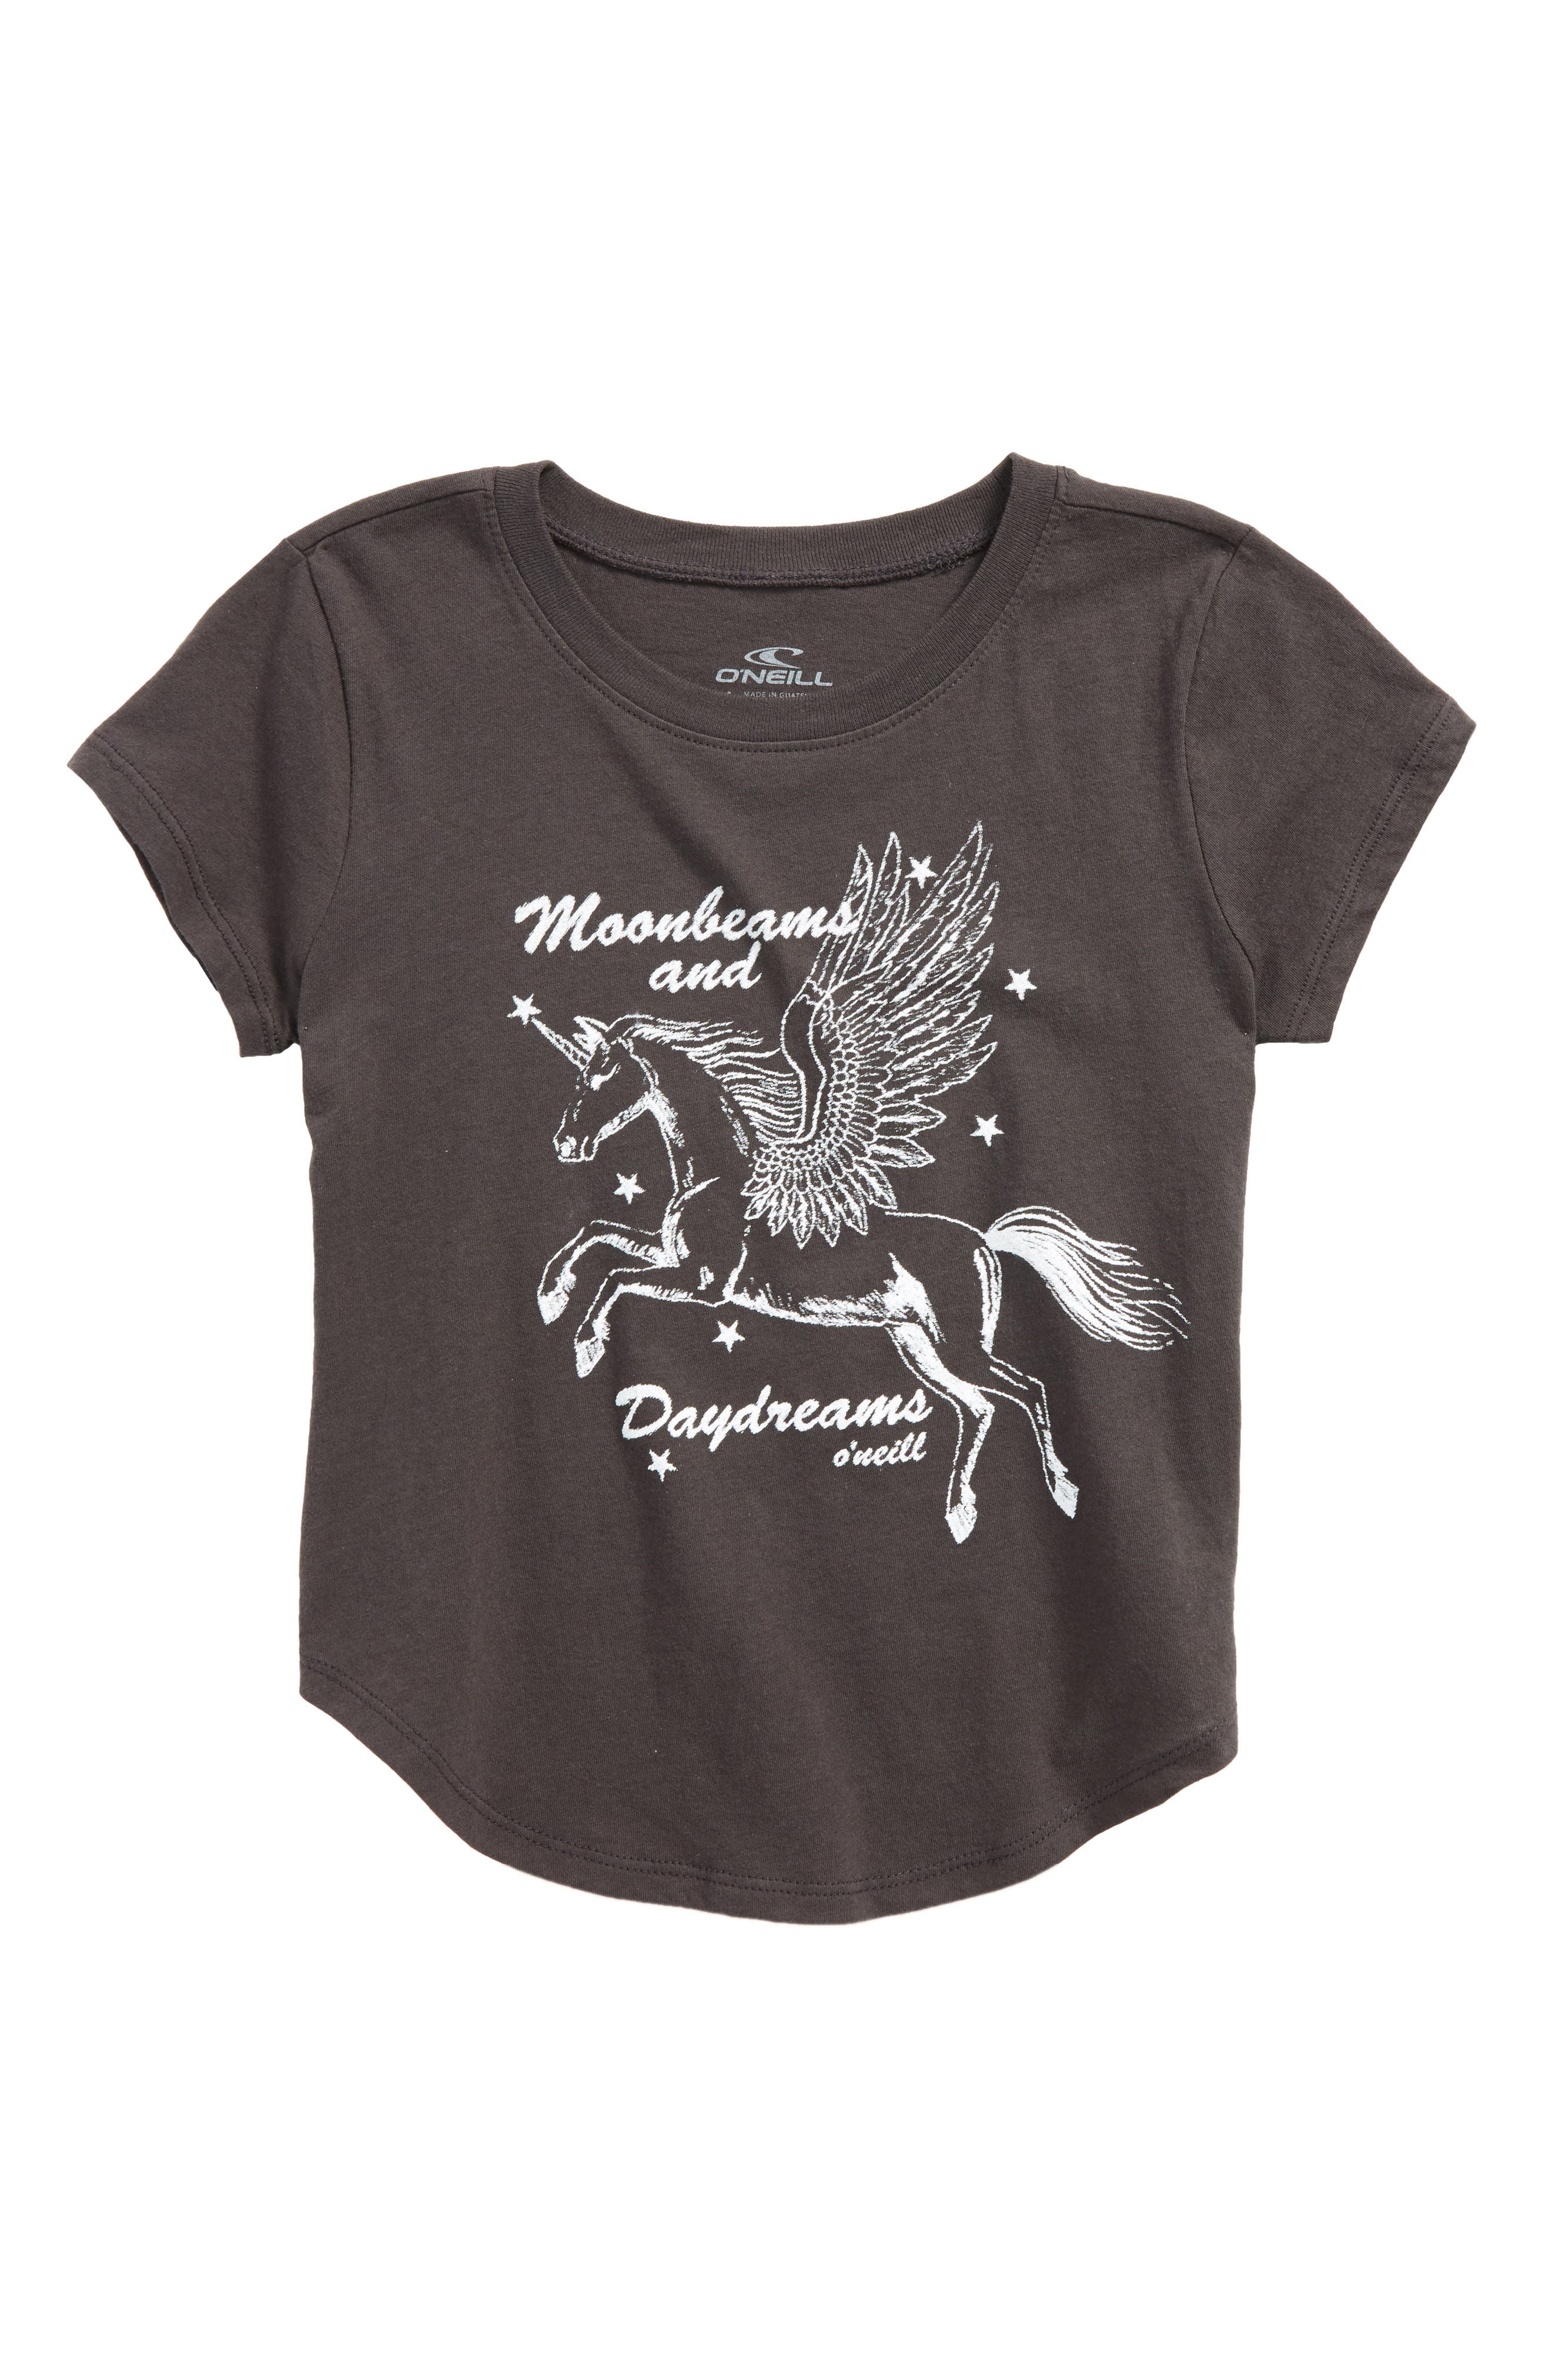 Alternate Image 1 Selected - O'Neill Moonbeams and Daydreams Graphic Tee (Toddler Girls & Little Girls)